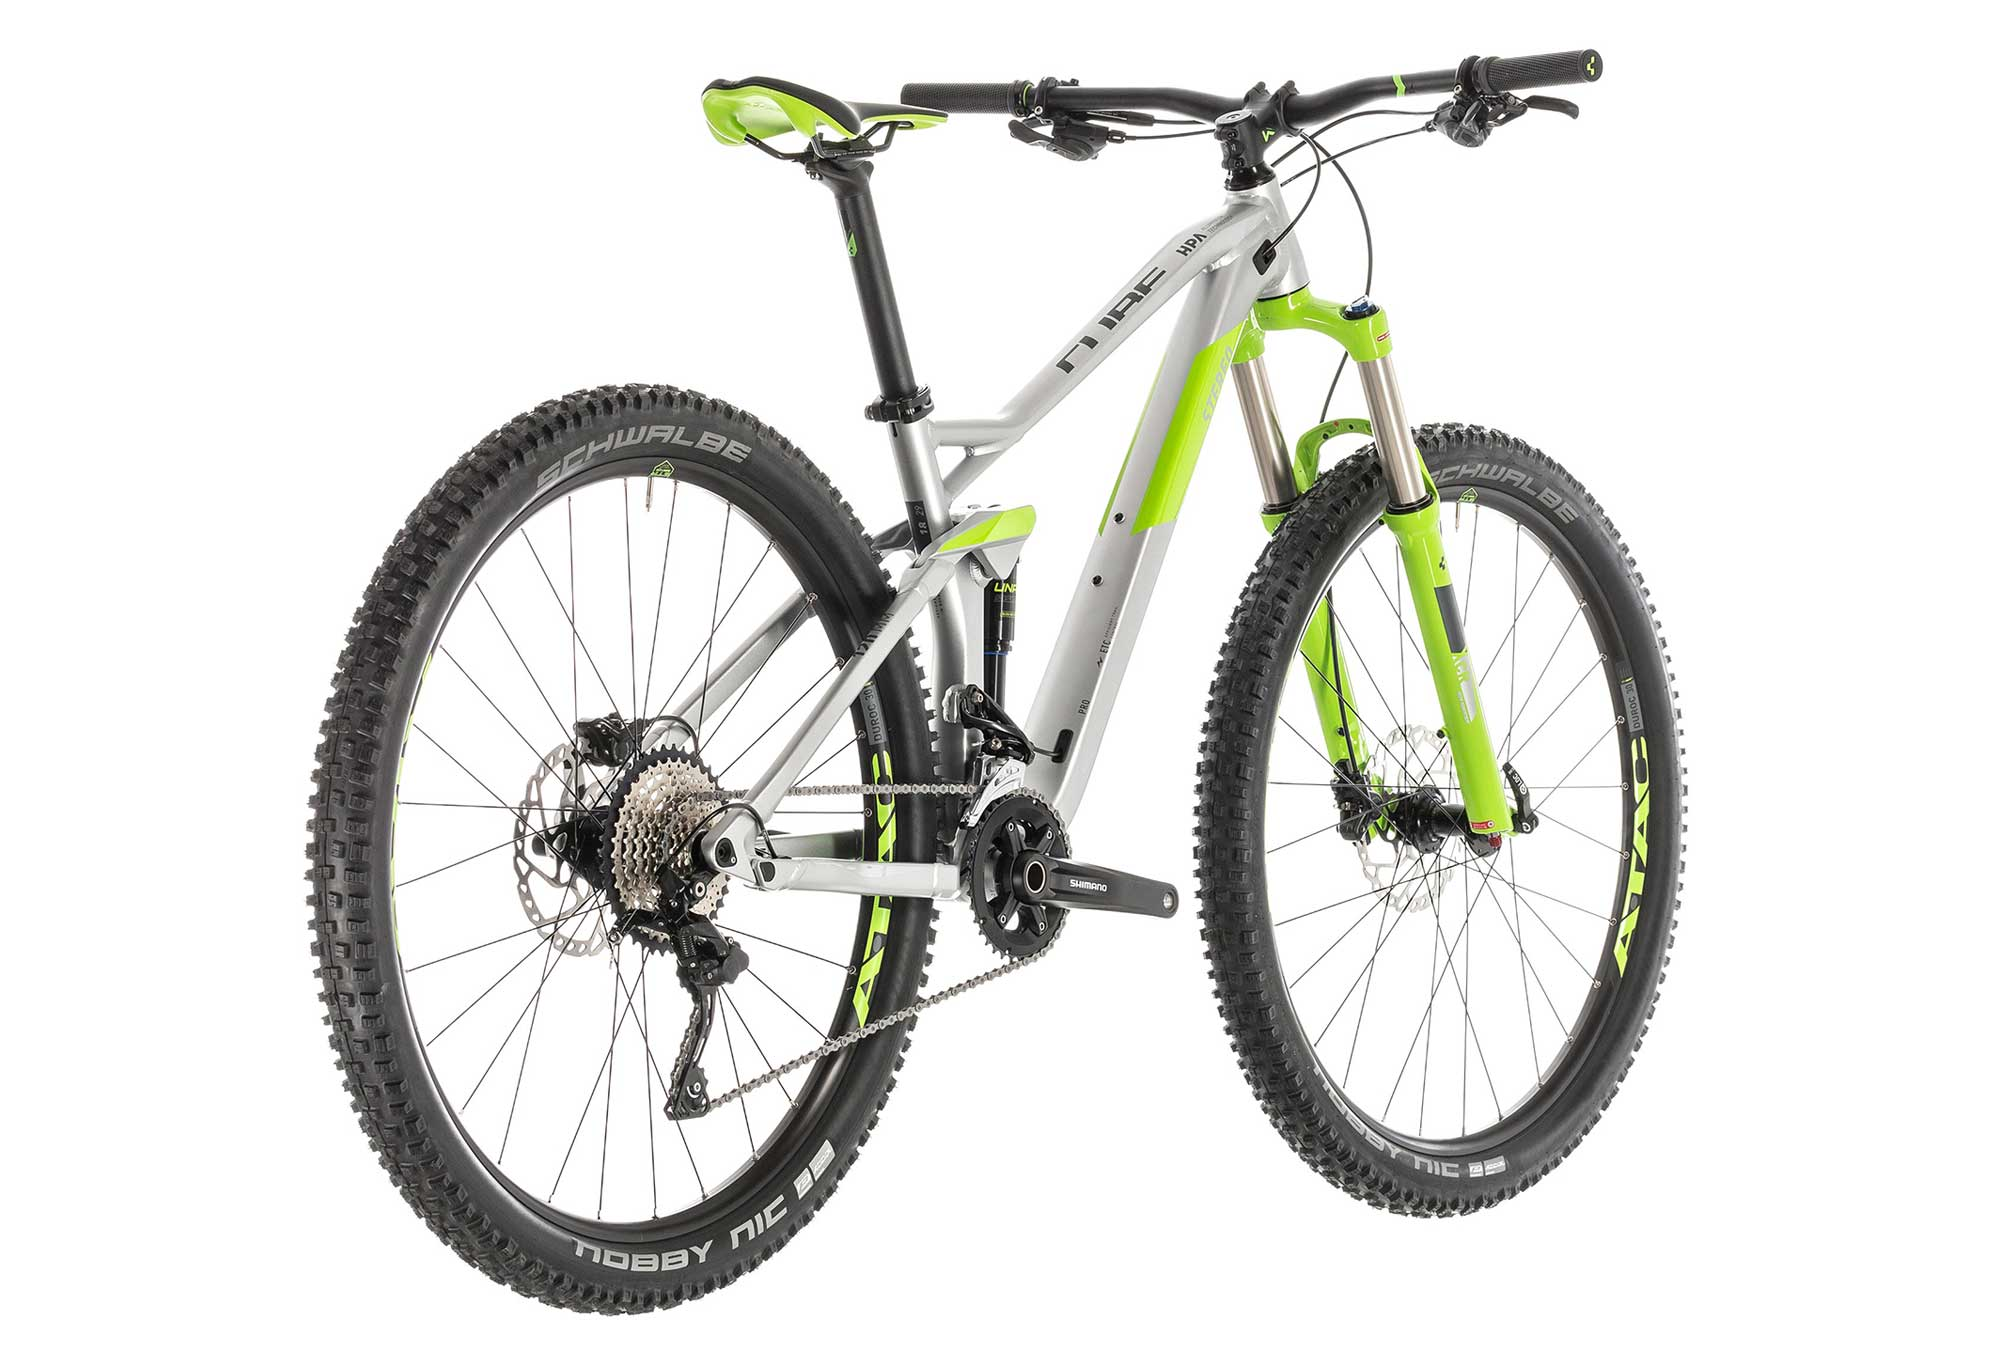 Cube Stereo 120 Pro 29 Full Suspension MTB Shimano Deore